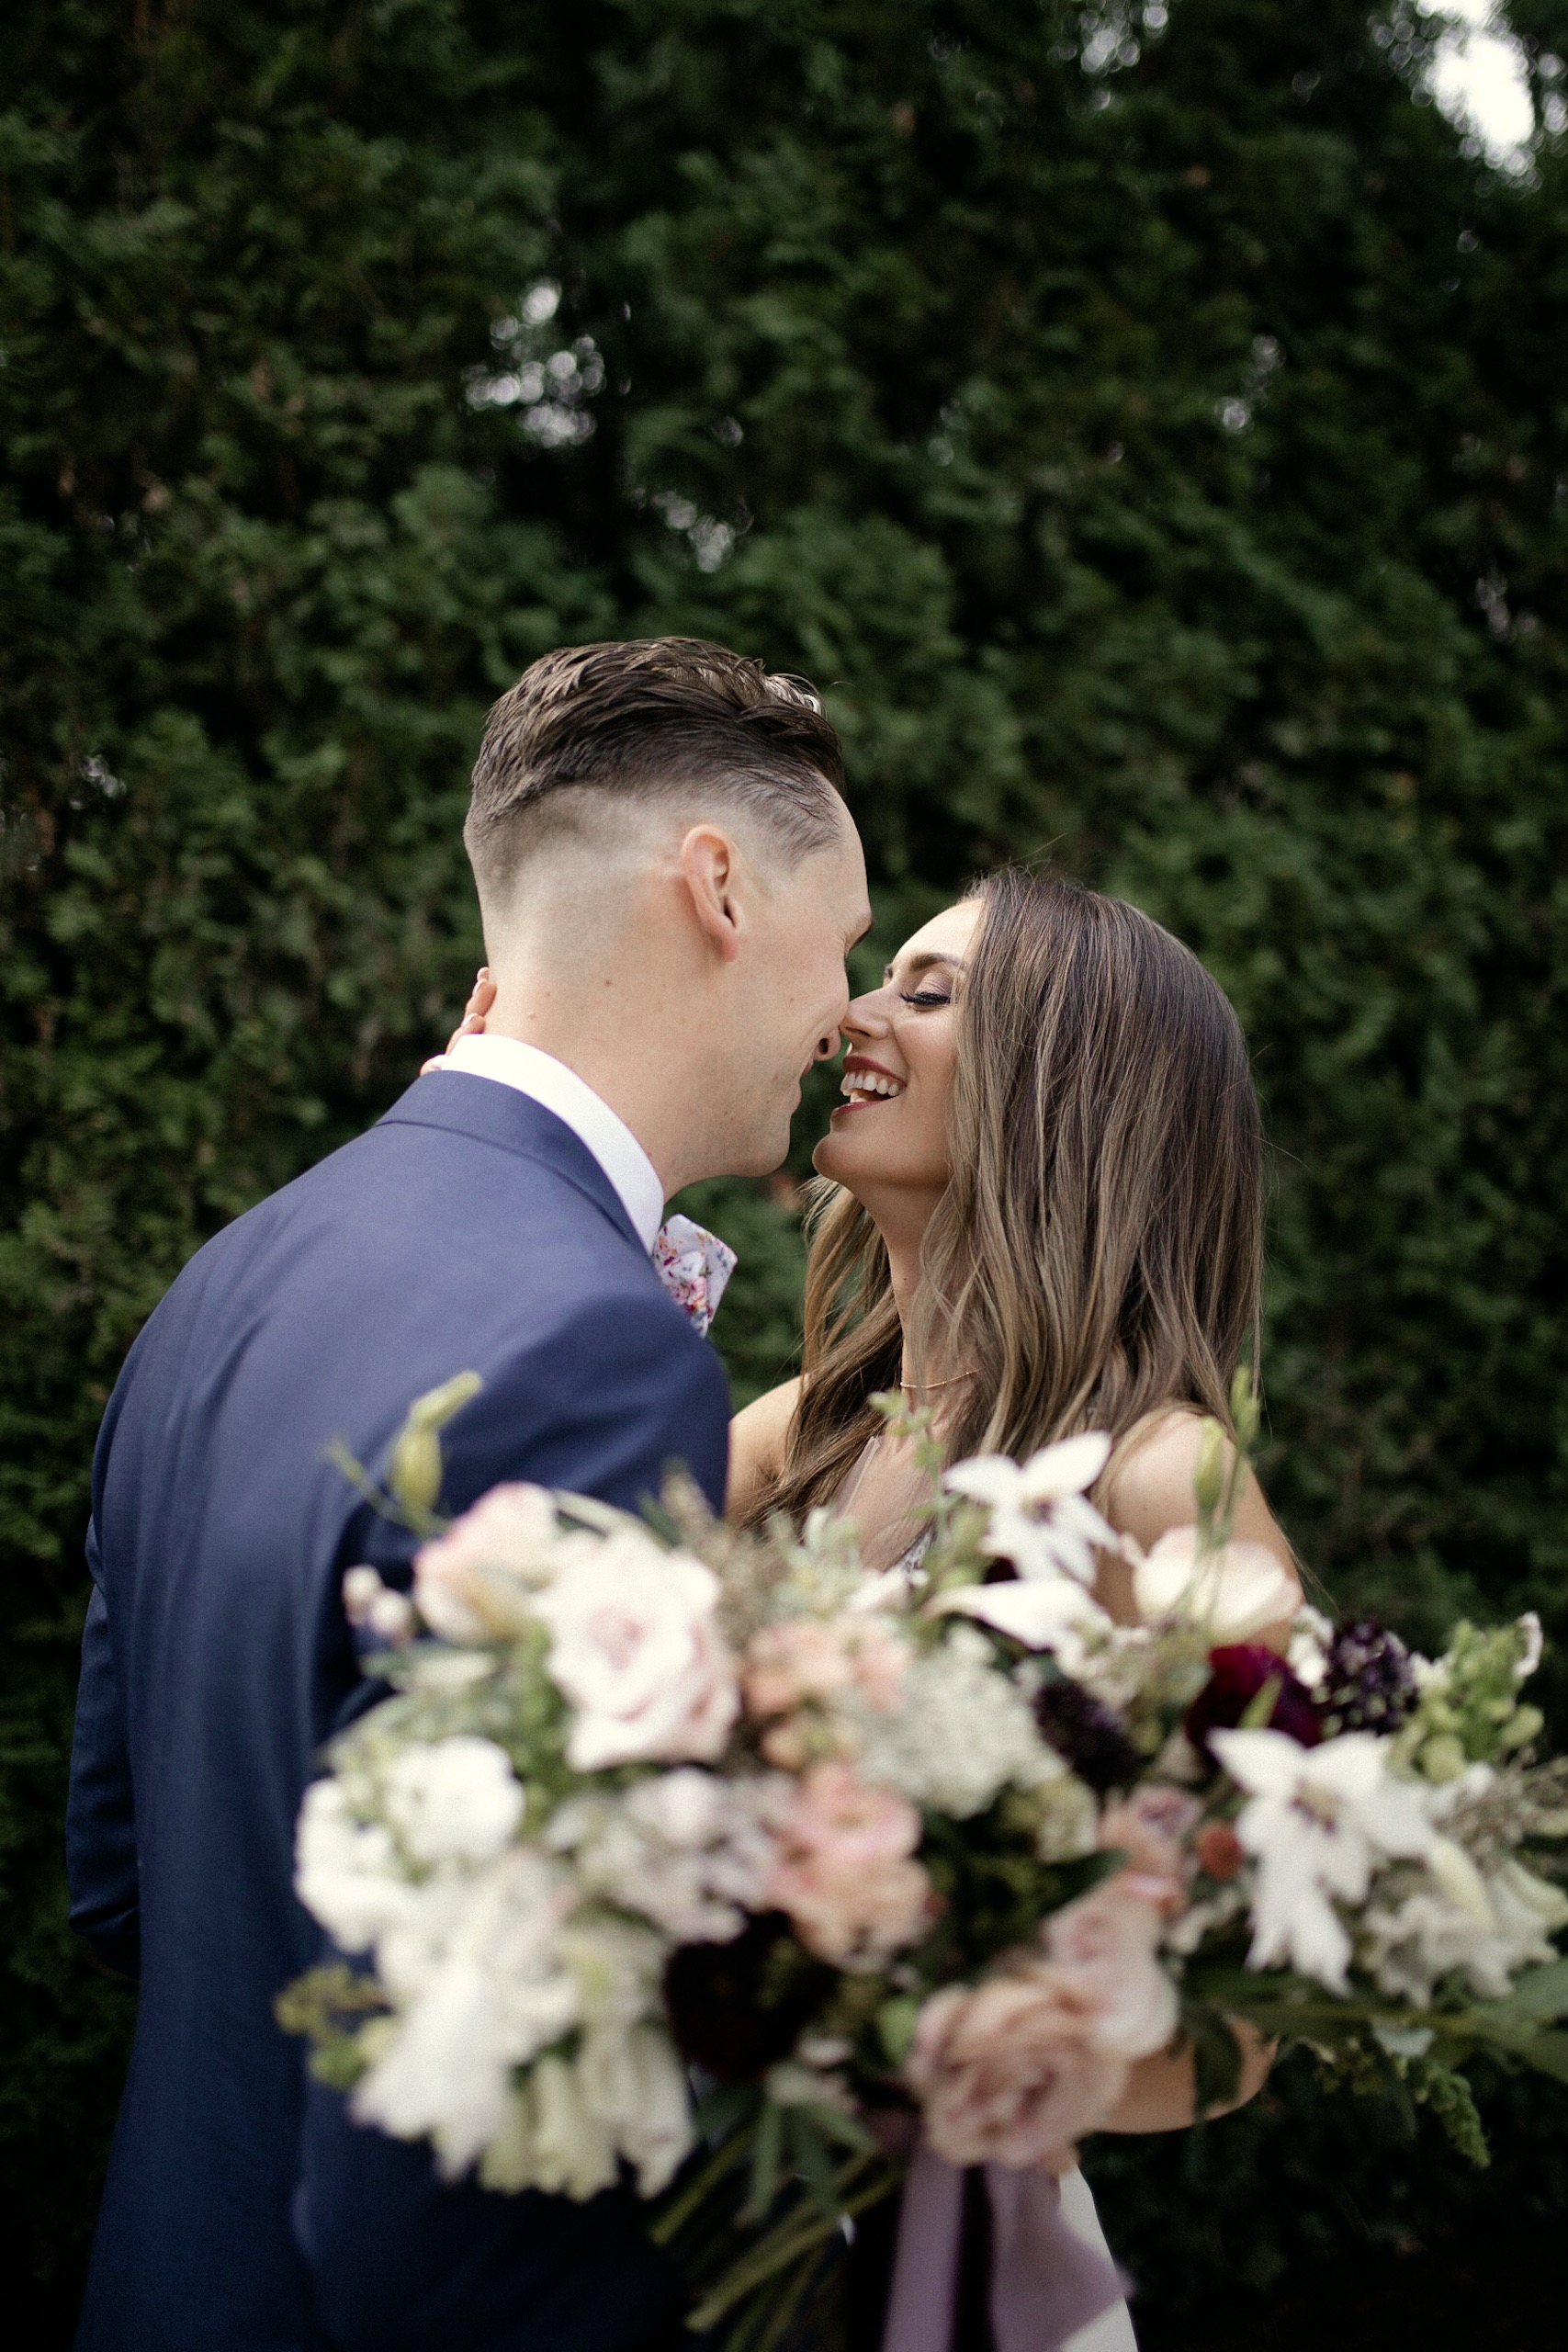 Bride and Groom with wedding florals